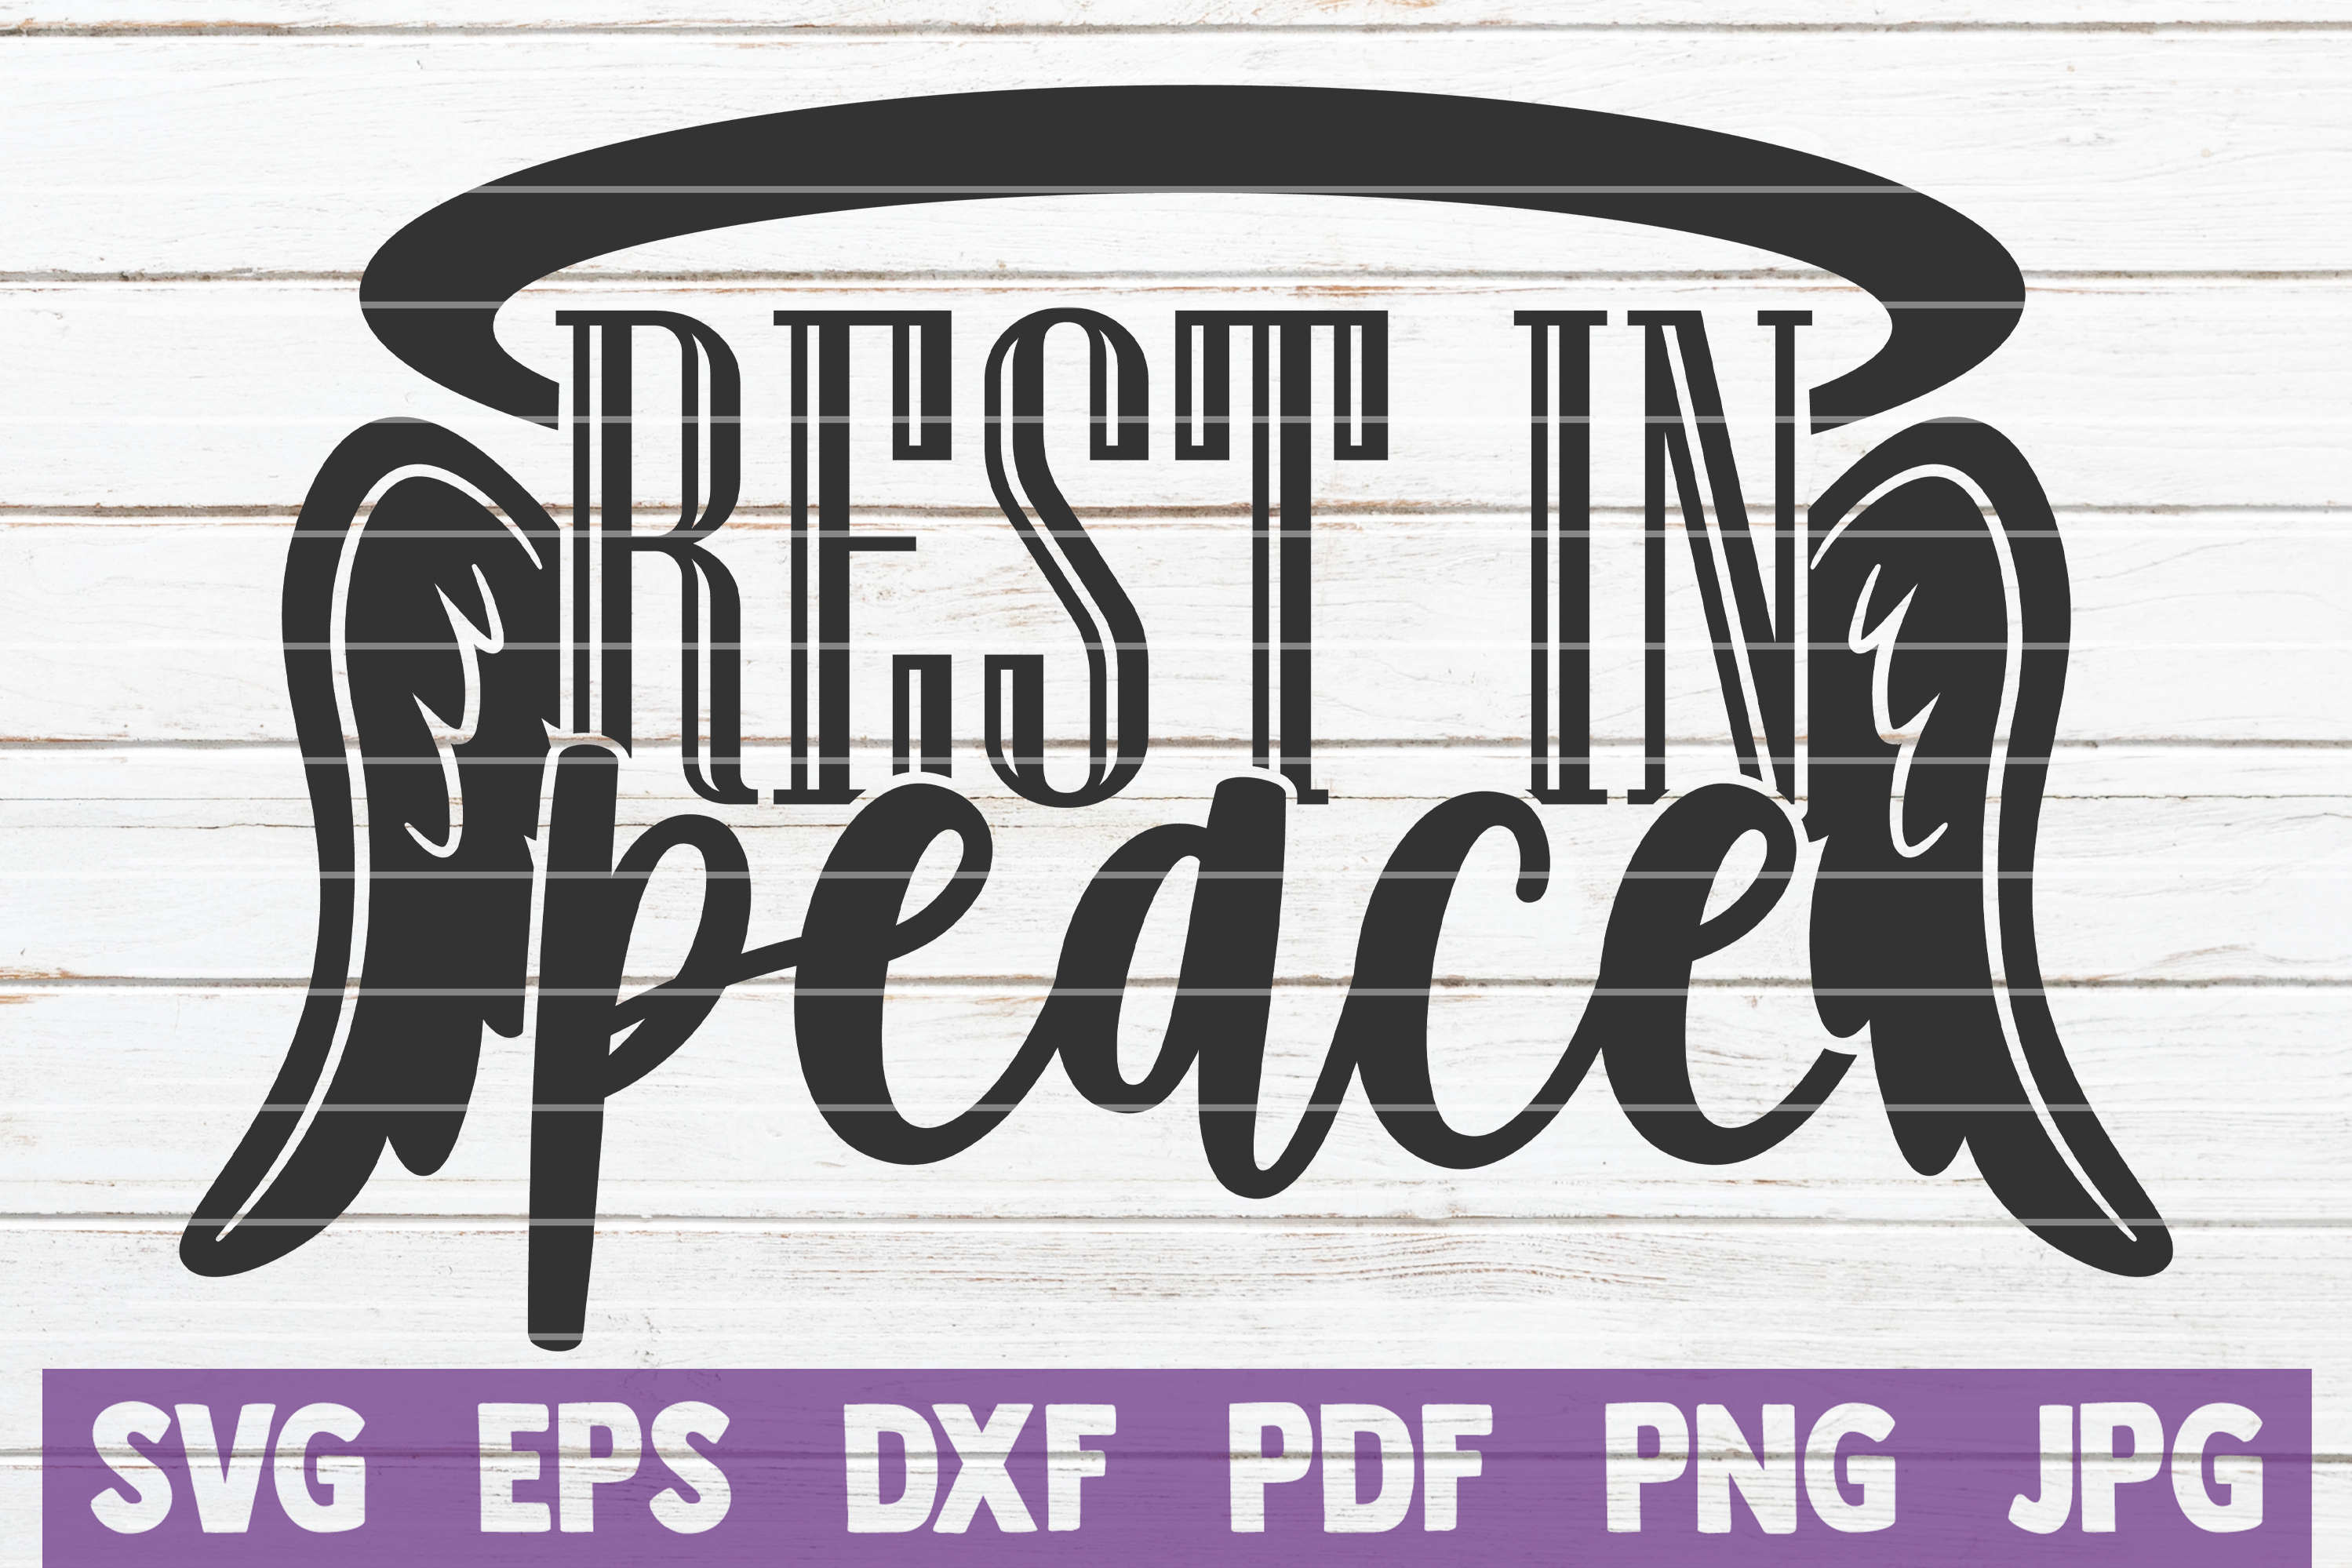 Download Free Rest In Peace Graphic By Mintymarshmallows Creative Fabrica for Cricut Explore, Silhouette and other cutting machines.